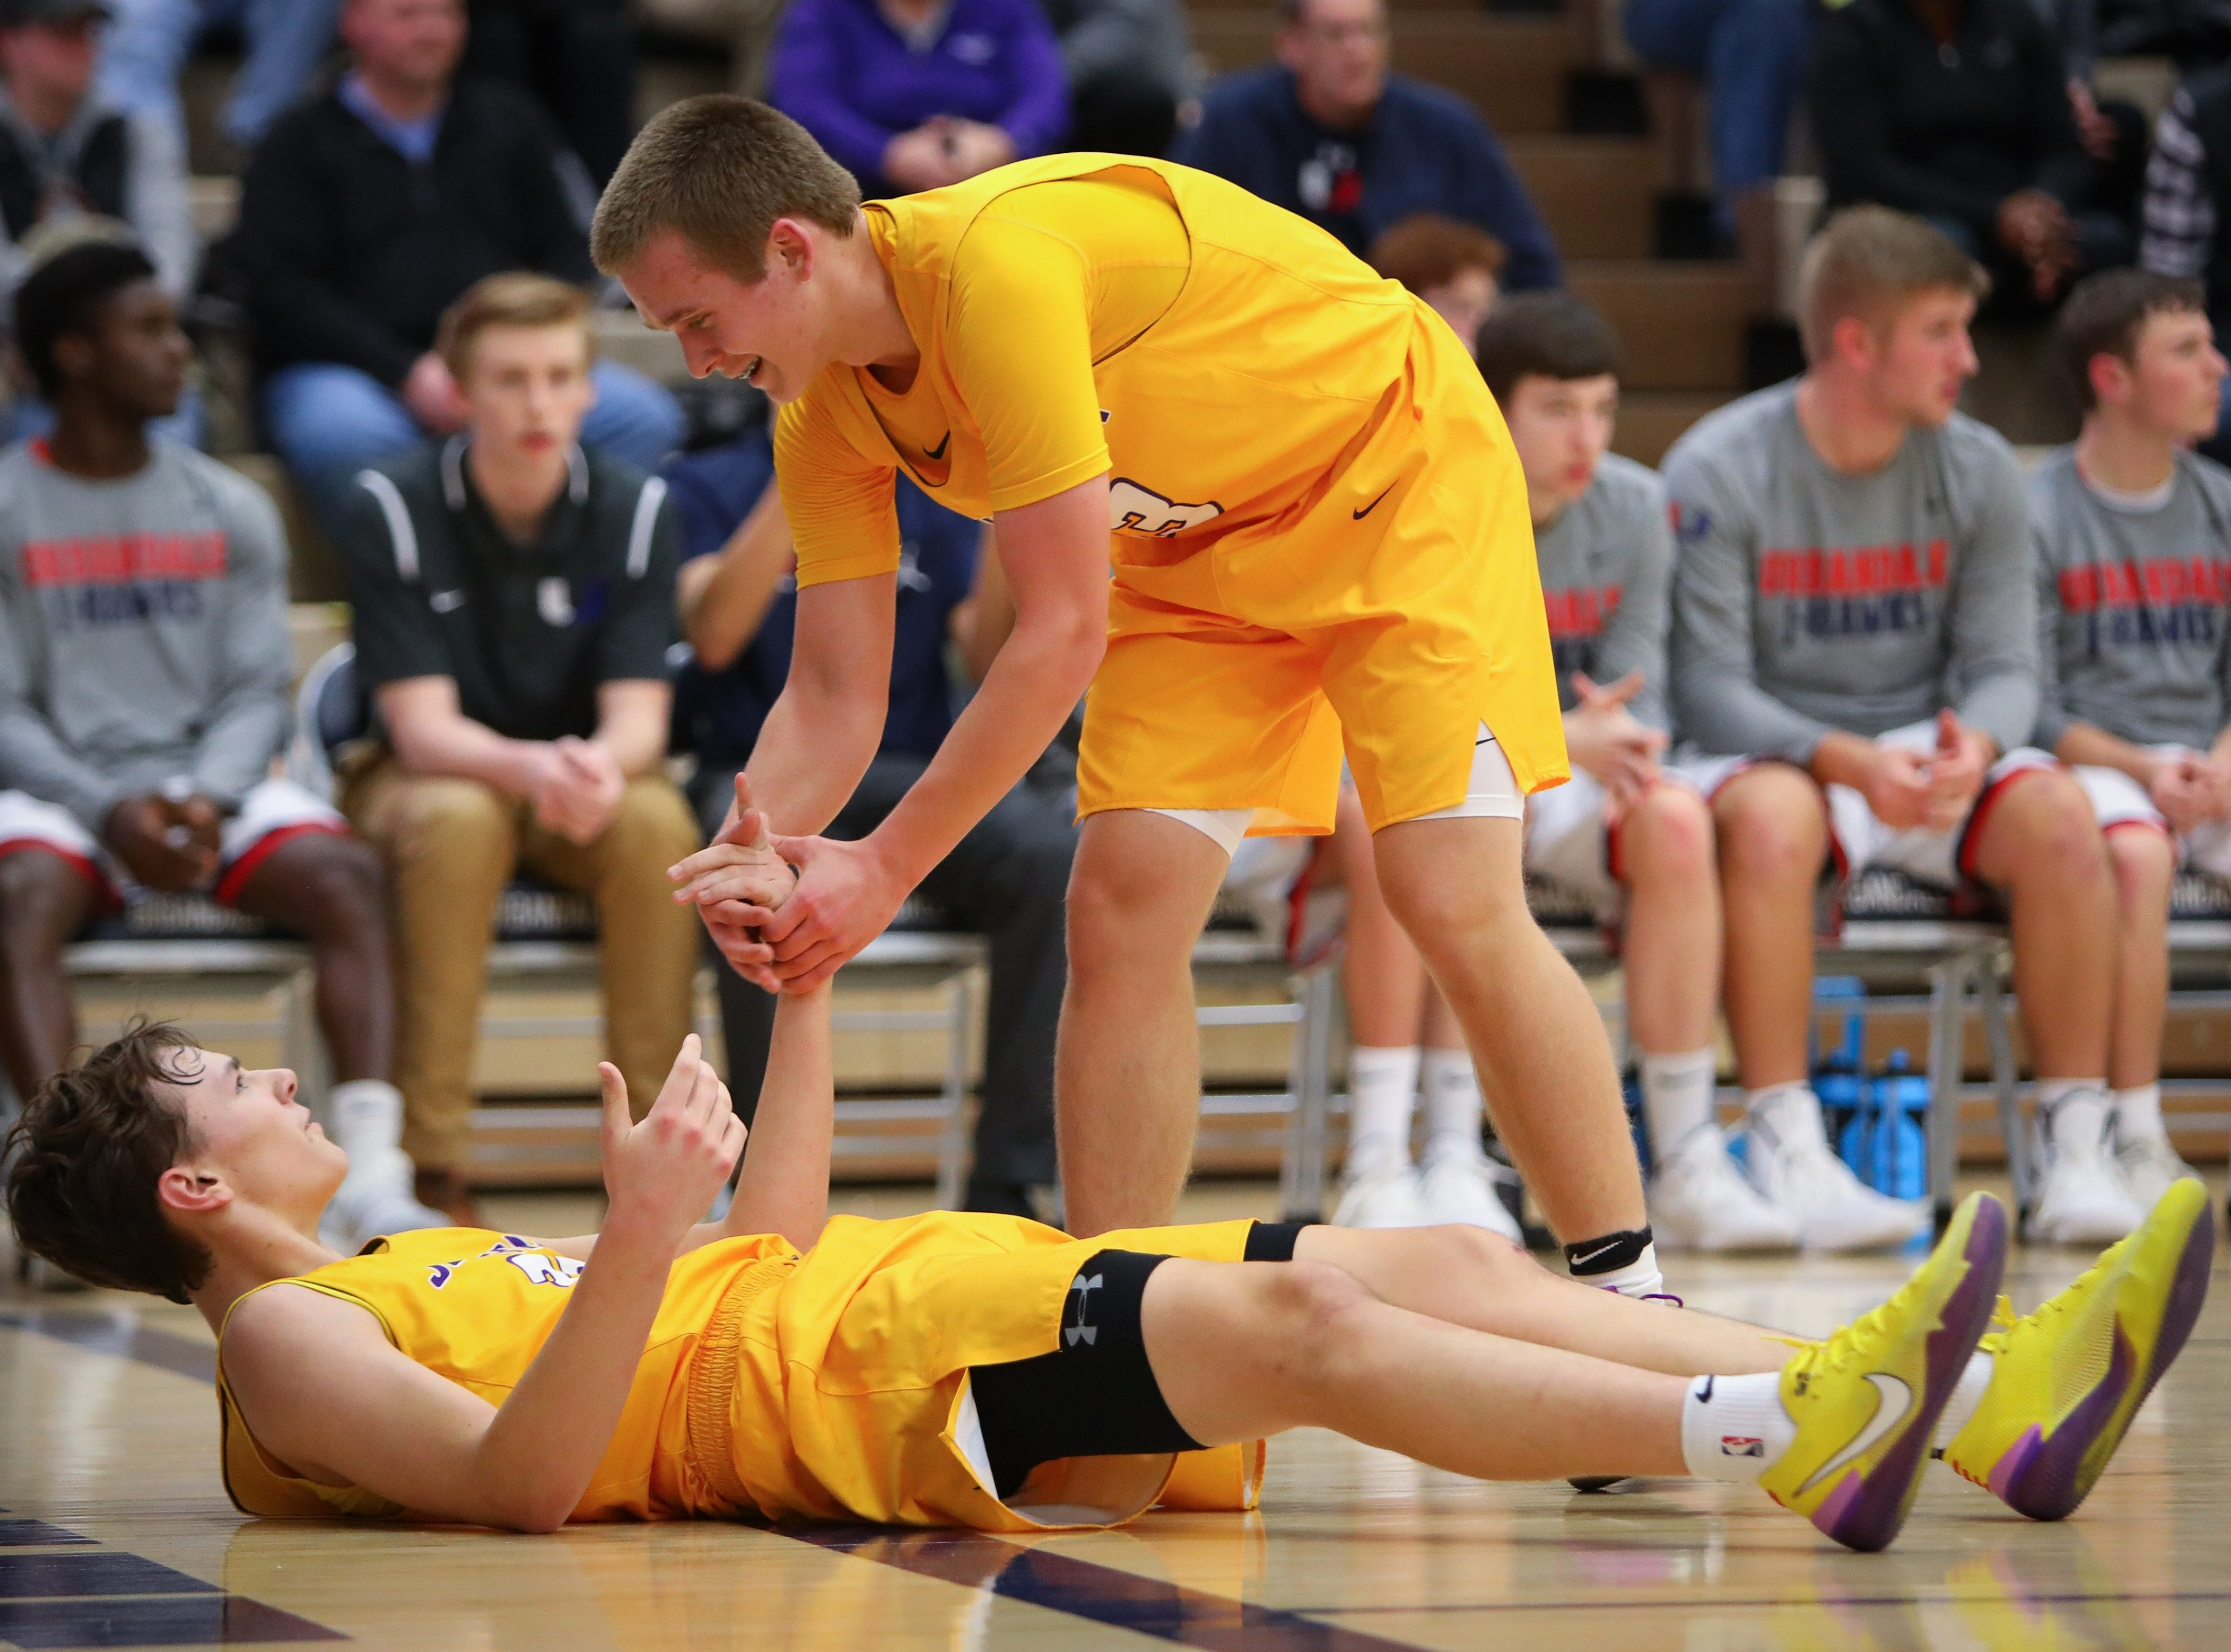 Johnston freshman Jacob Runayn helps sophomore Reid Grant up during a boys high school basketball game between the Johnston Dragons and the Urbandale J-Hawks at Urbandale High School on Dec. 18, 2018 in Urbandale, Iowa.